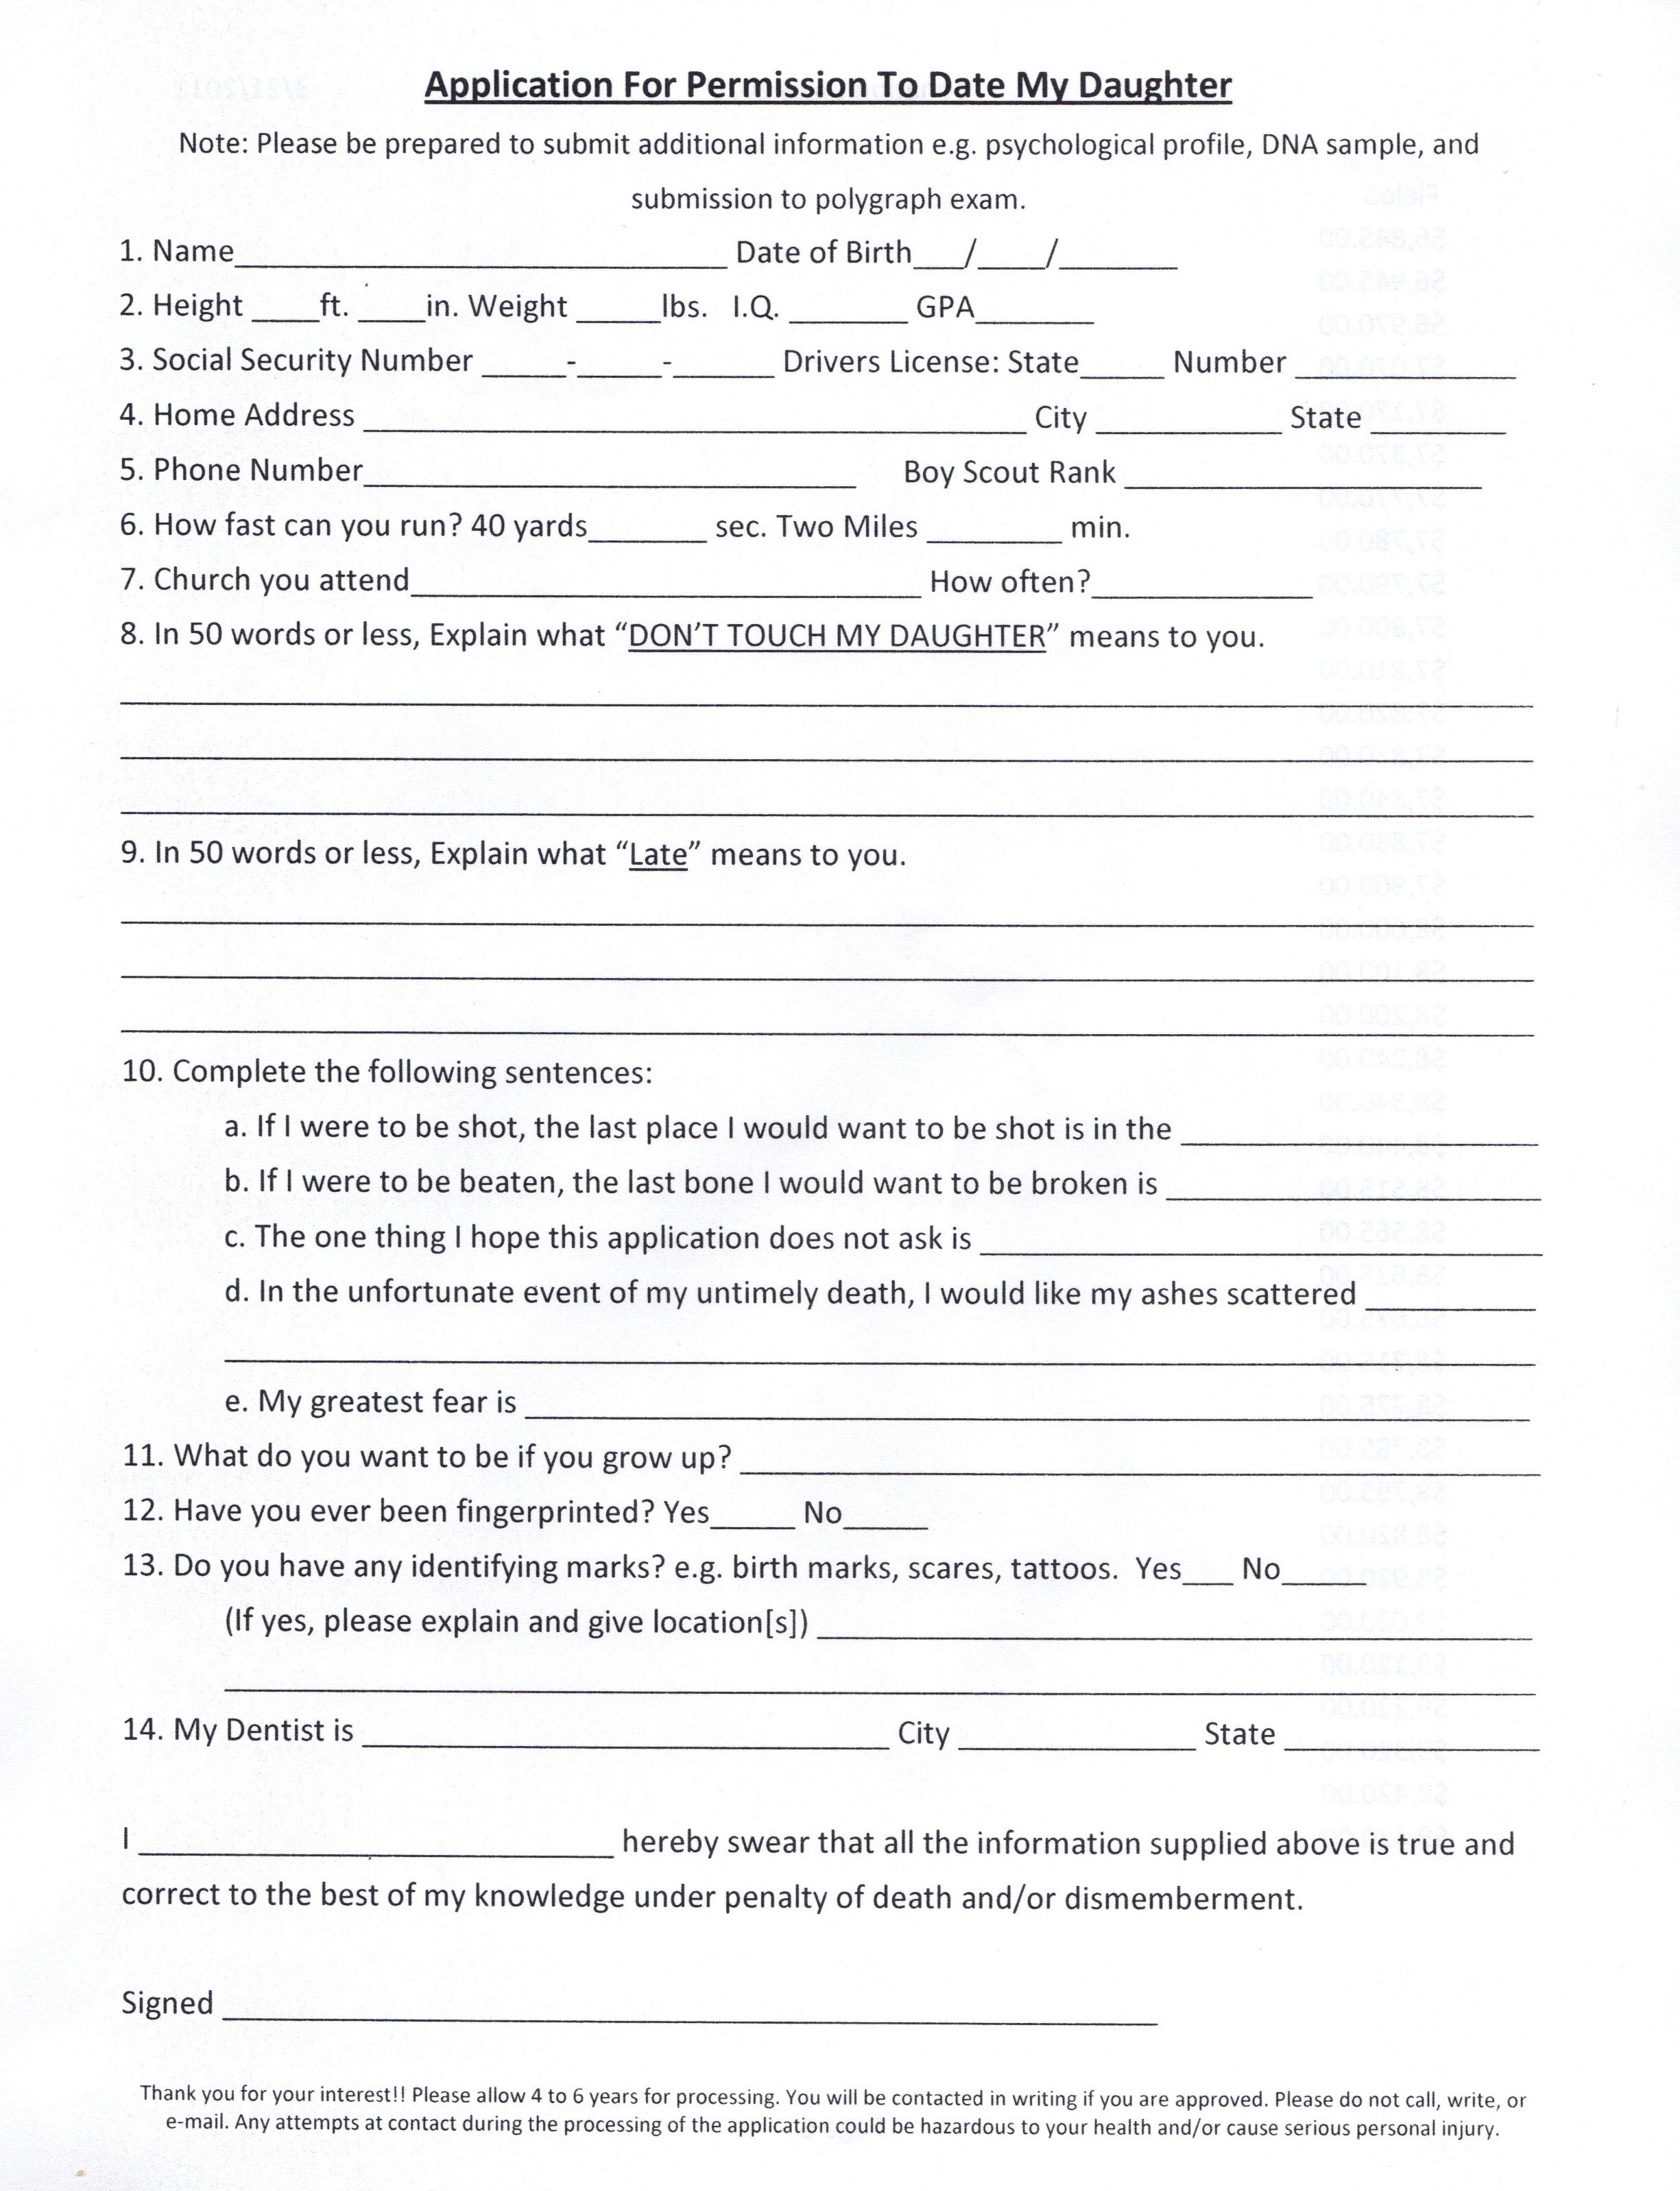 Application to date